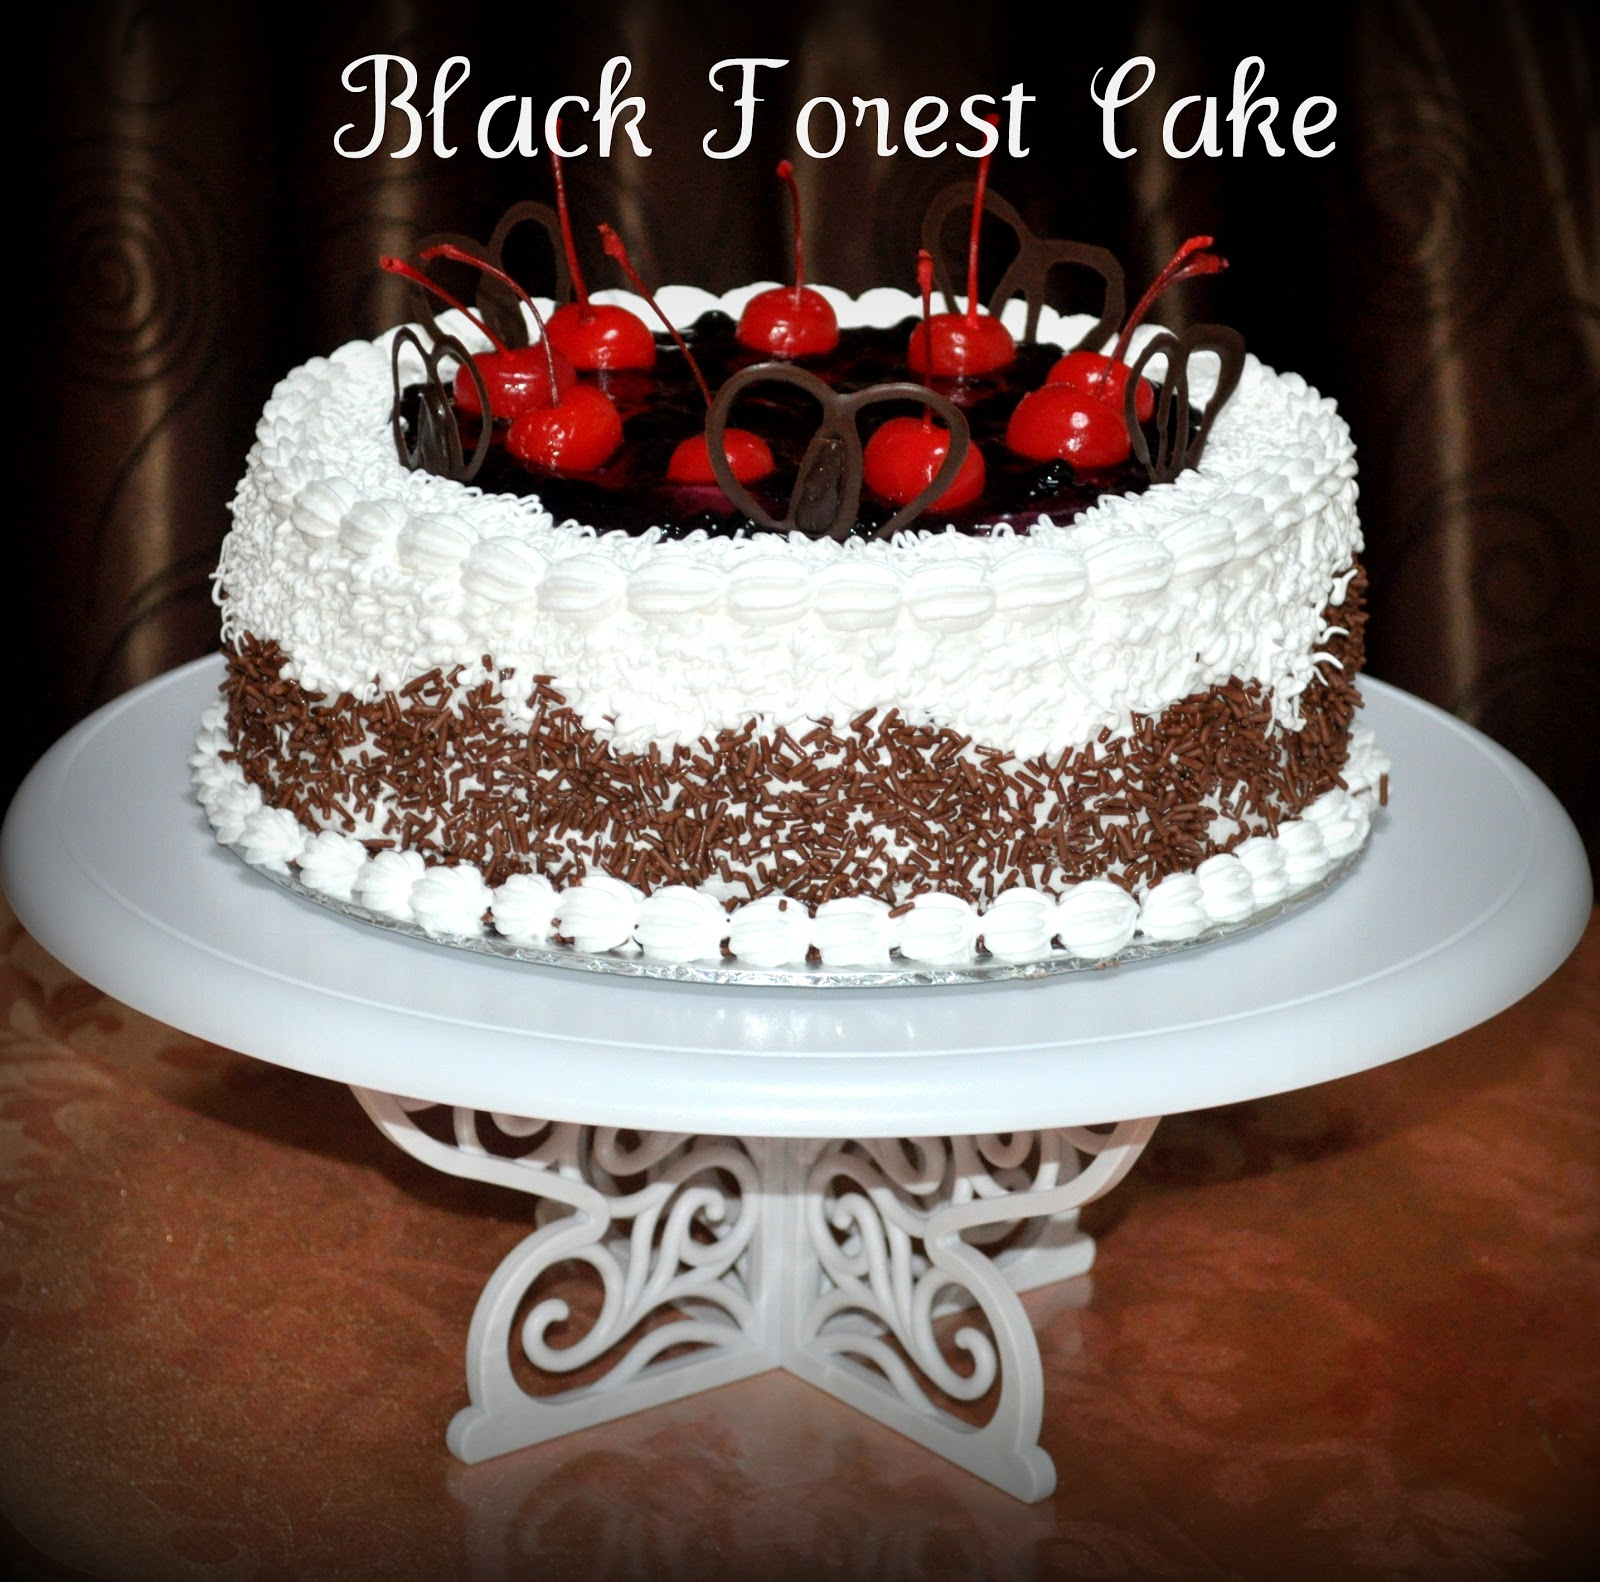 national black forest cake day this cake takes its name